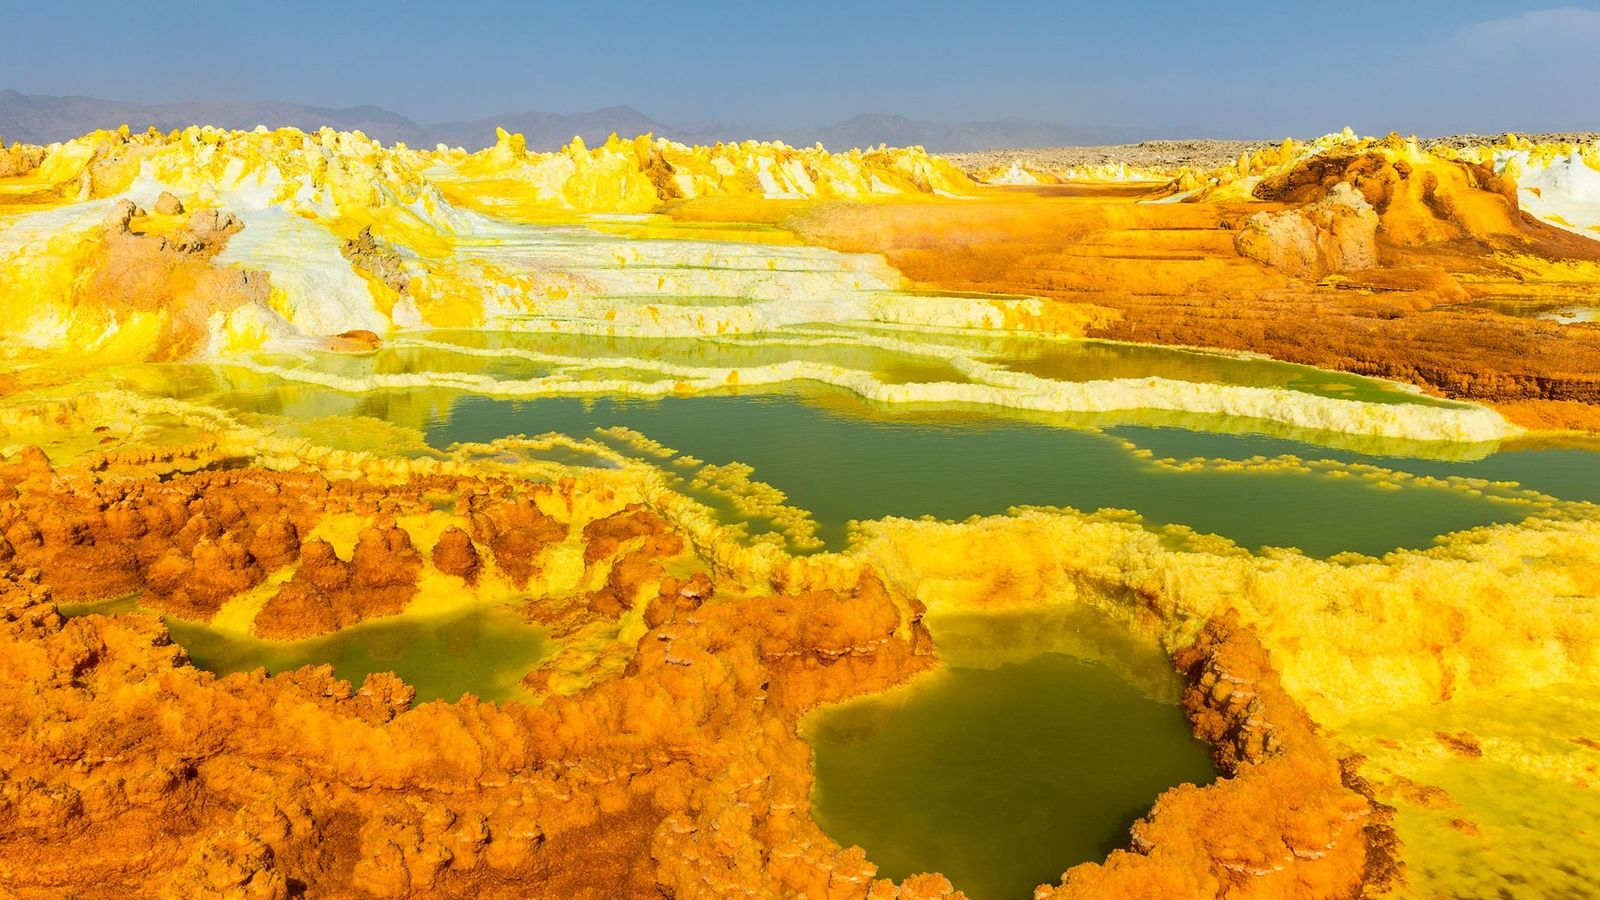 Ethiopia's Danakil Depression is the definition of inhospitable. The sunken volcanic landscape is rife with acidic ...